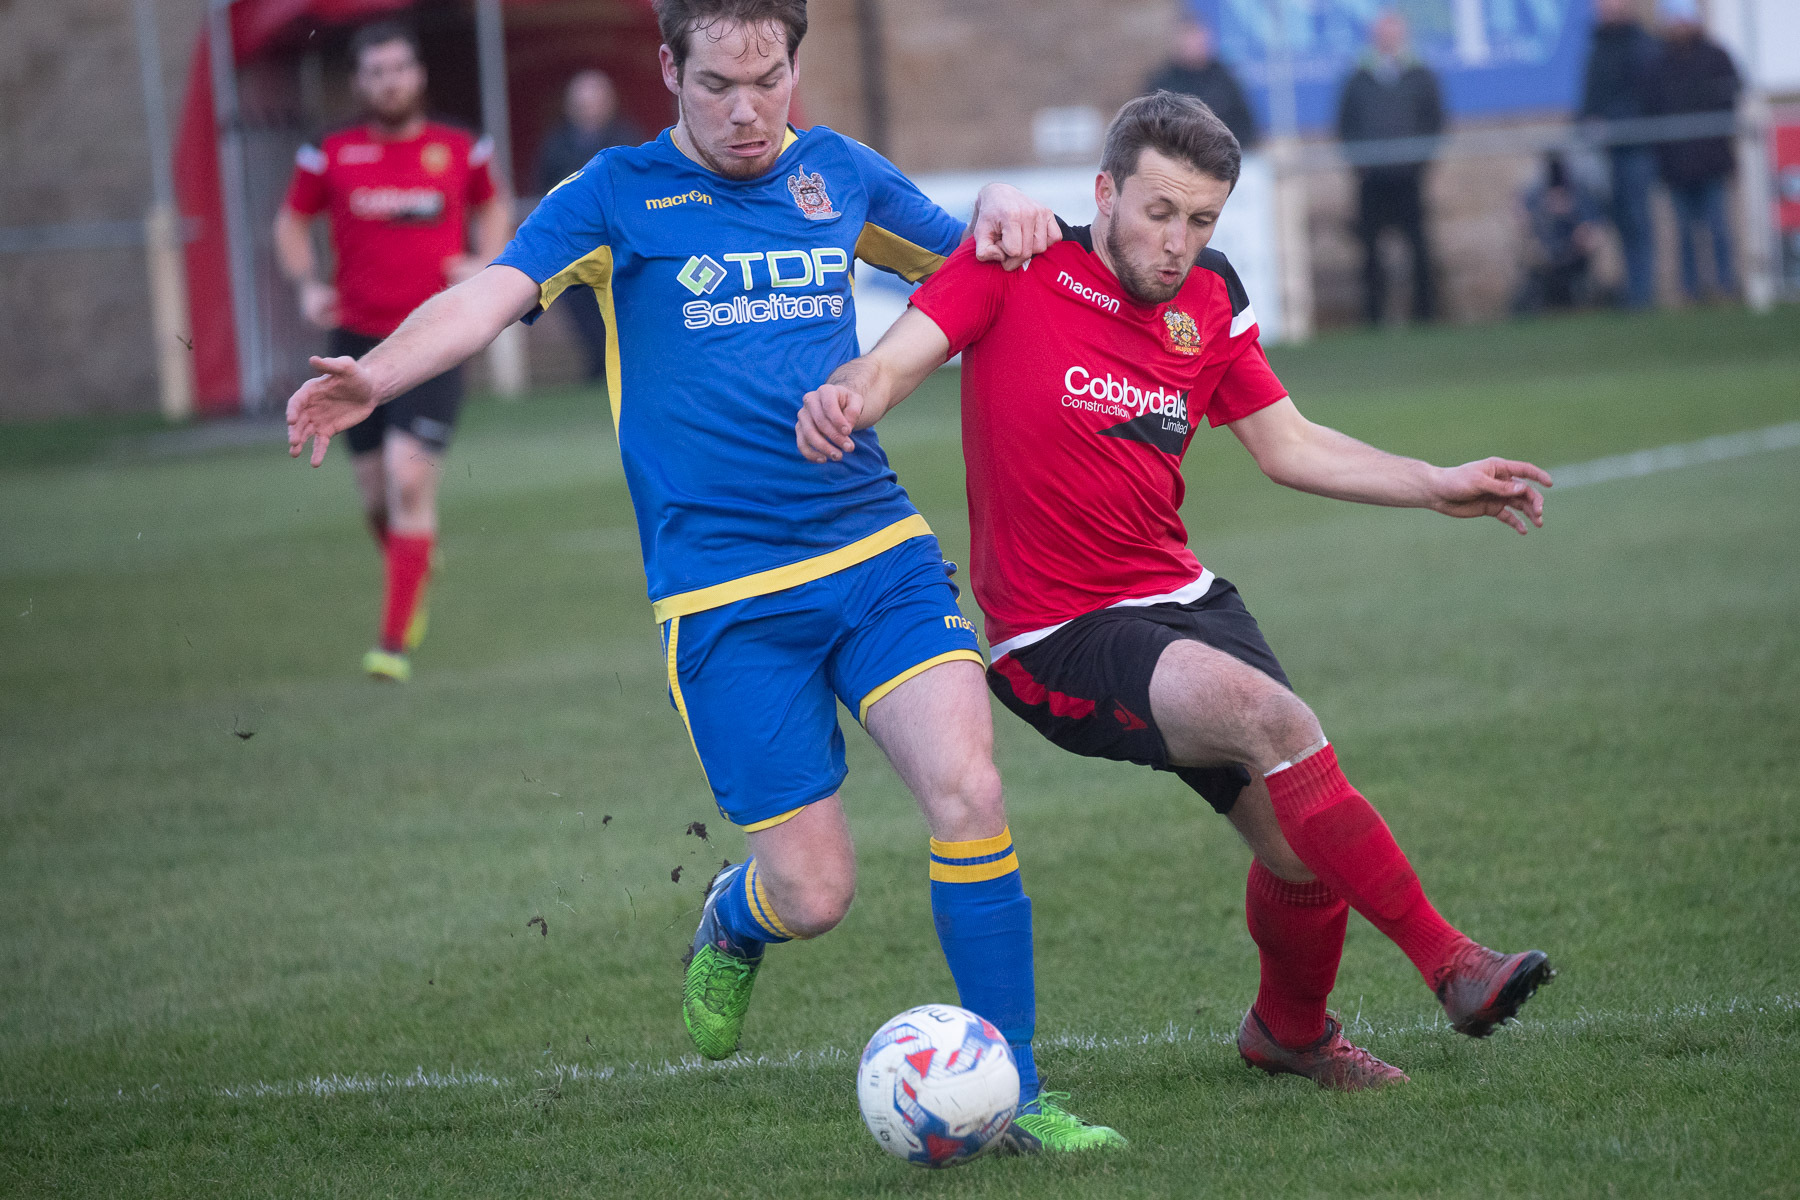 Bootle's Ben Jago battles for the ball with Silsden's Chris Wademan, right, during the latter side's 7-0 defeat in Hallmark Security League Premier Division. Picture: David Brett